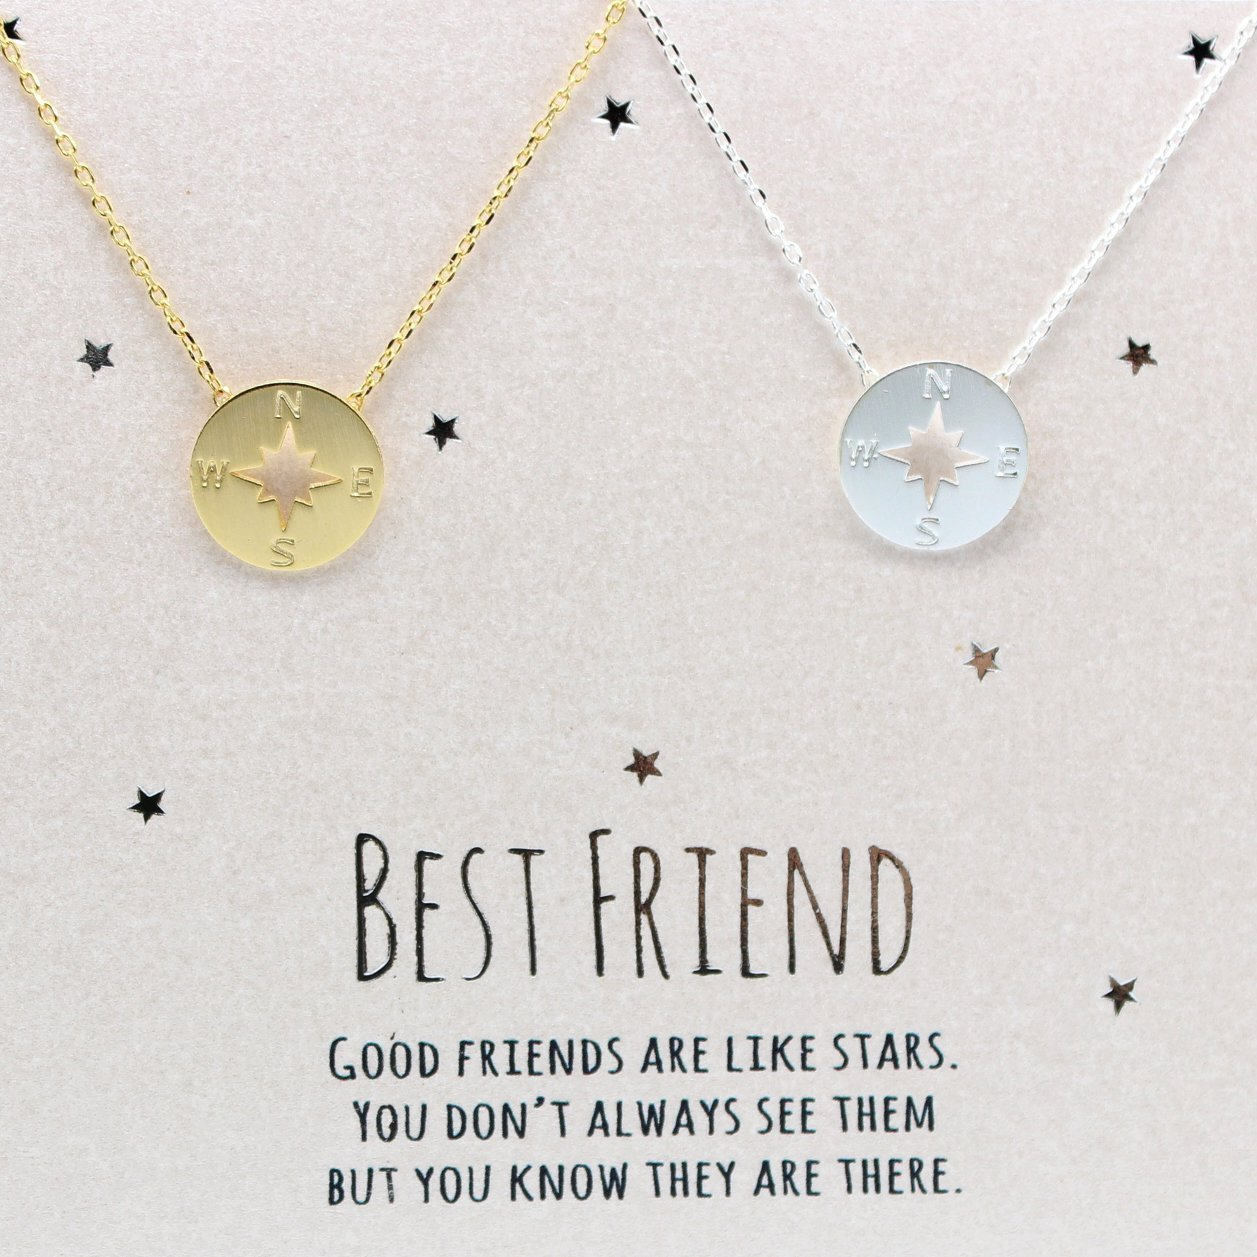 Amazon.com: compass necklace, Best friend necklace for 2, BFF ...